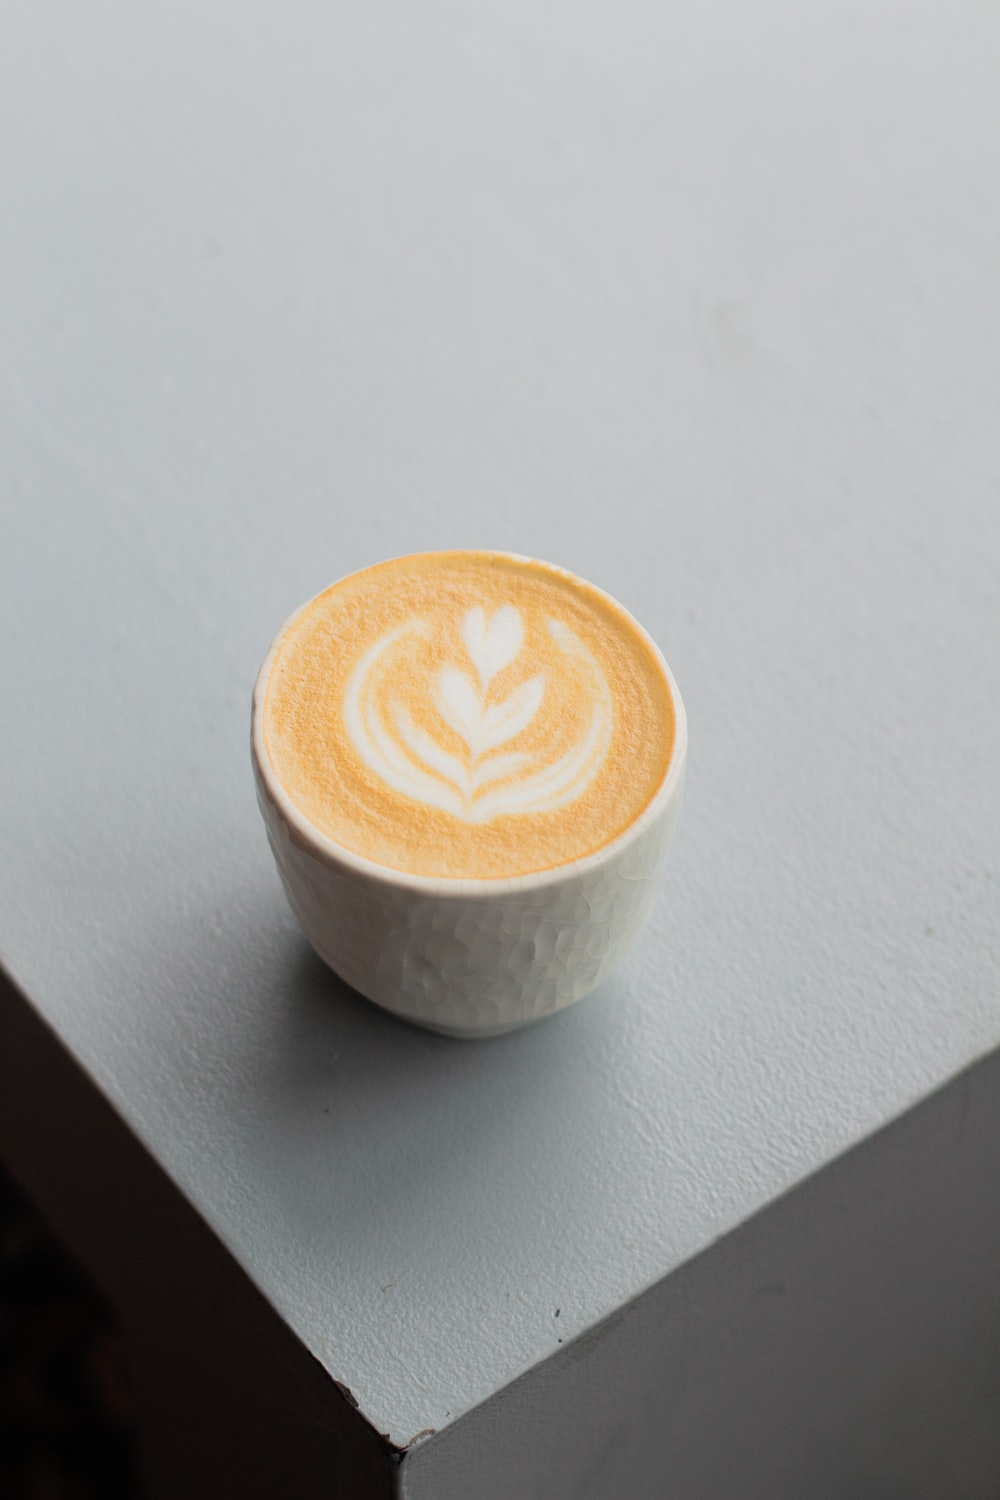 white ceramic cup with brown and white liquid